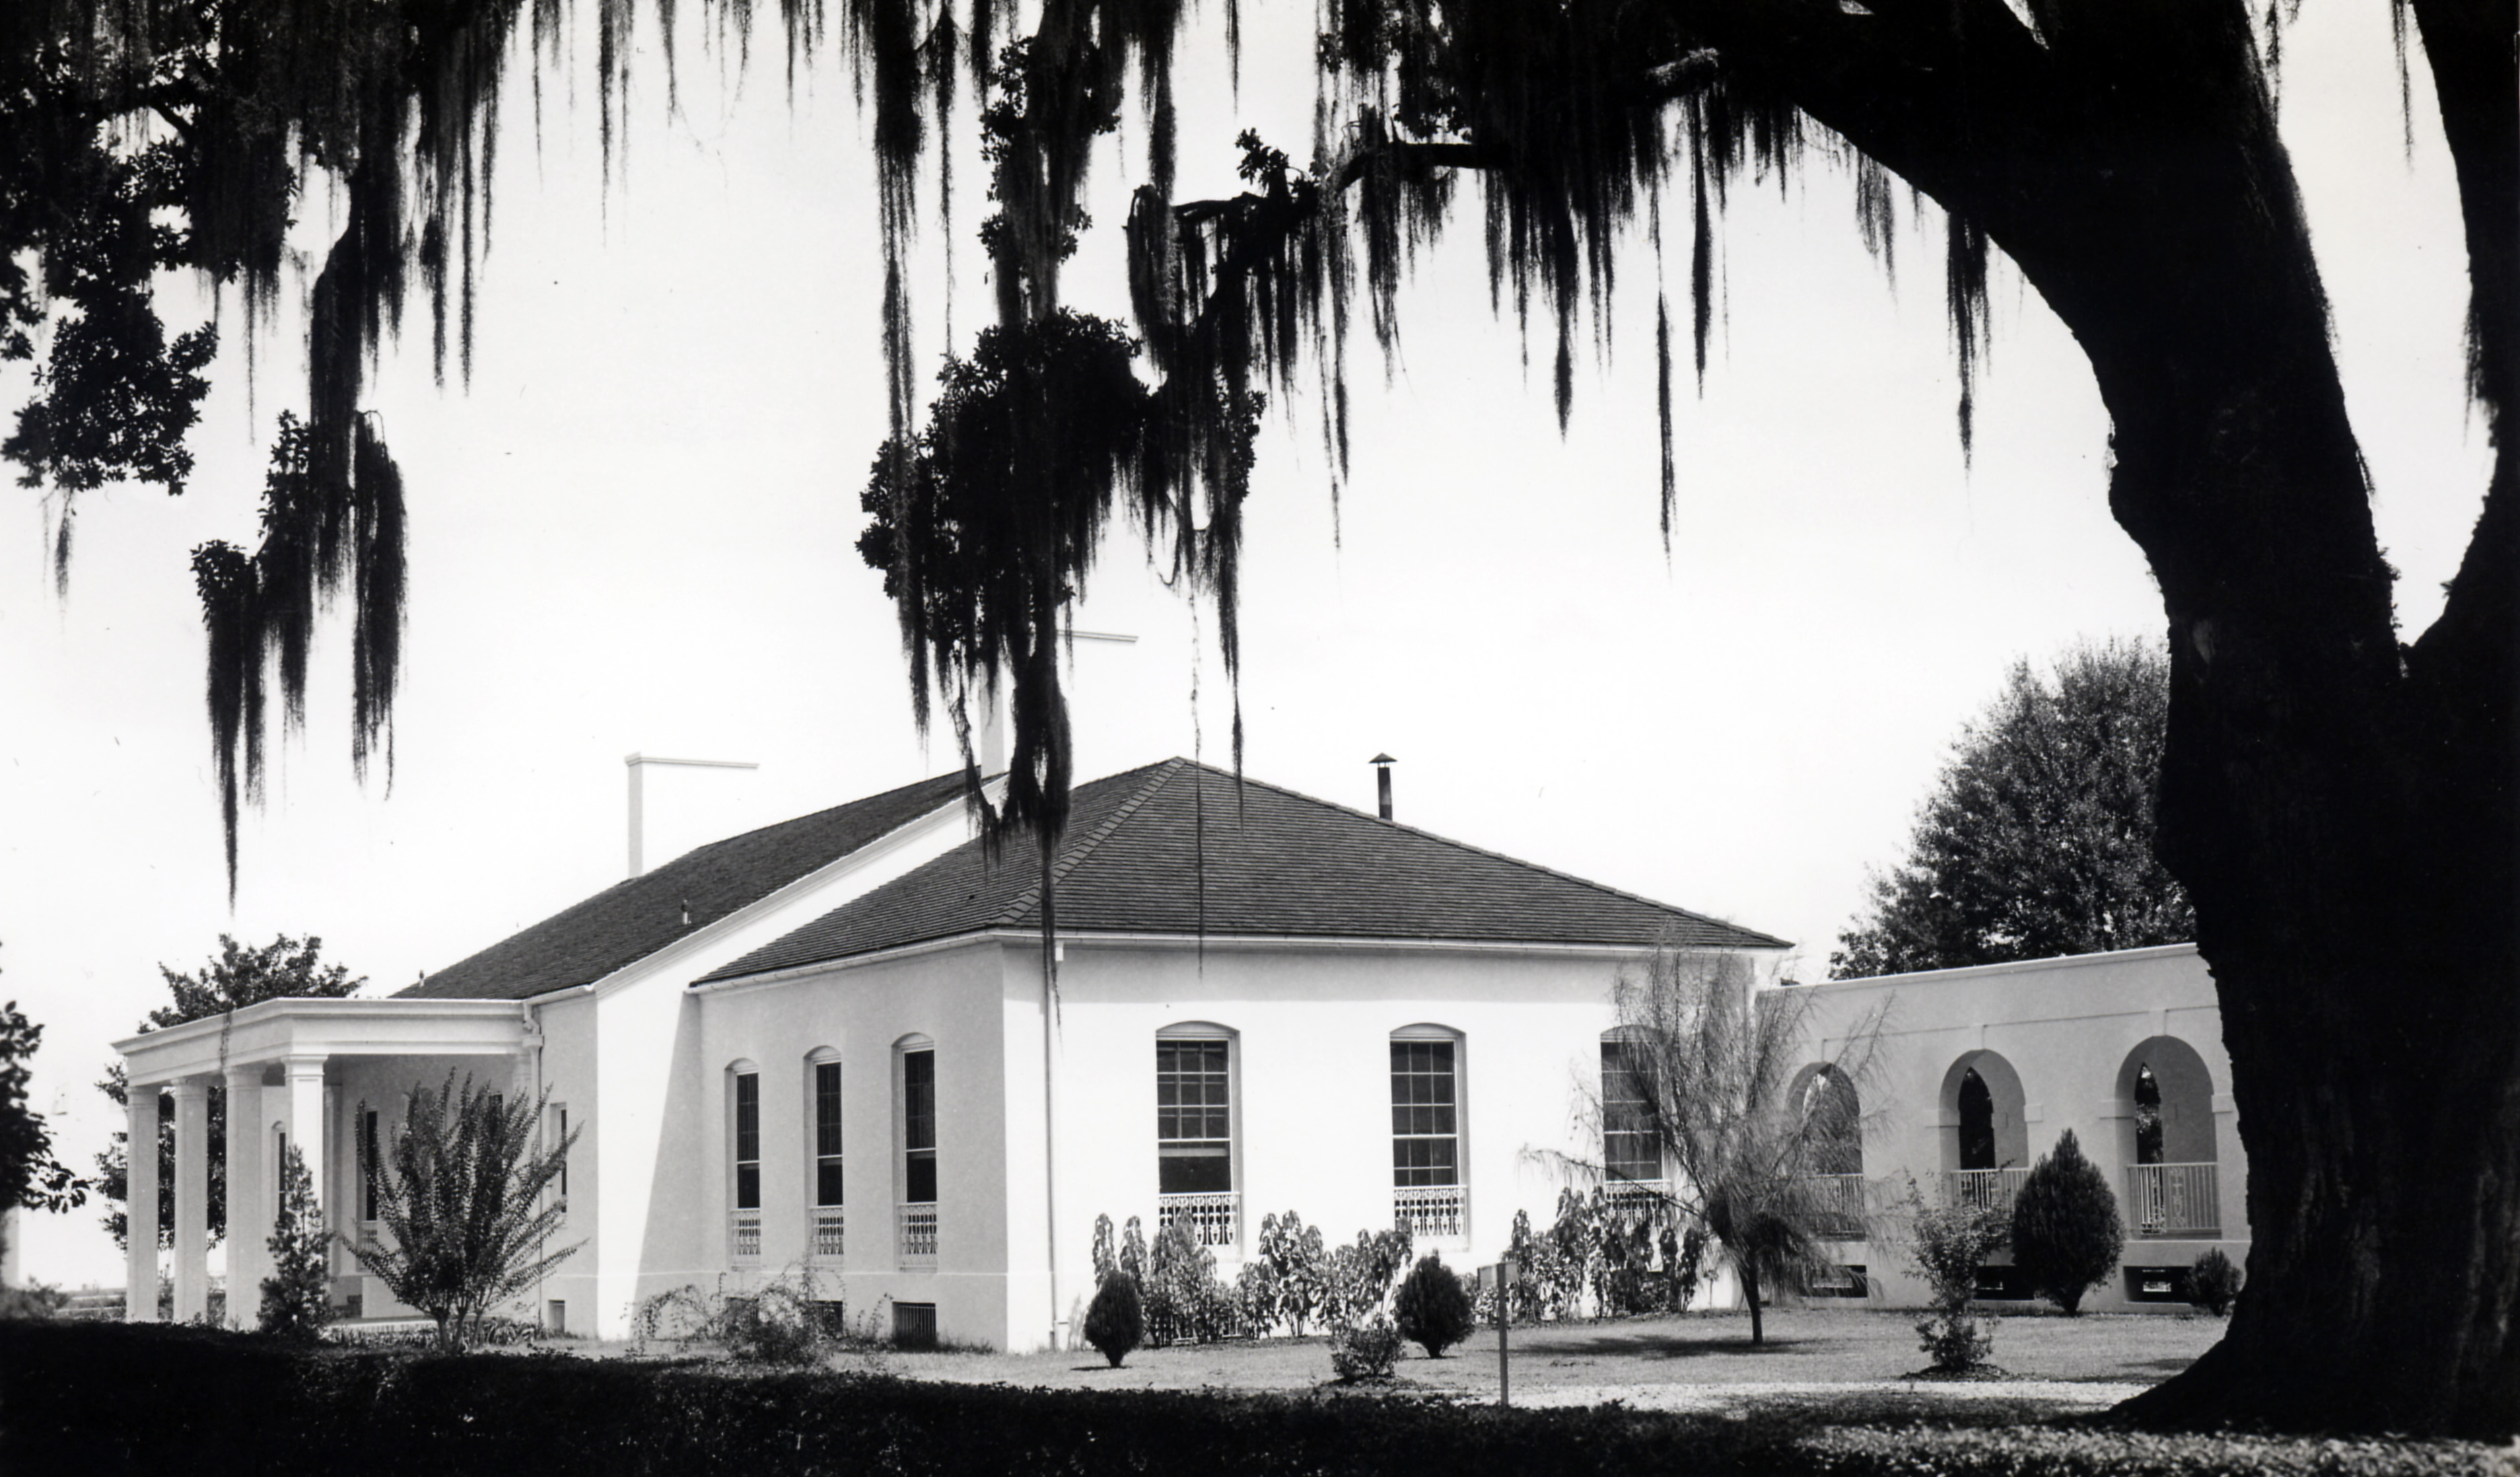 [CDATA[New Orleans Historical]]